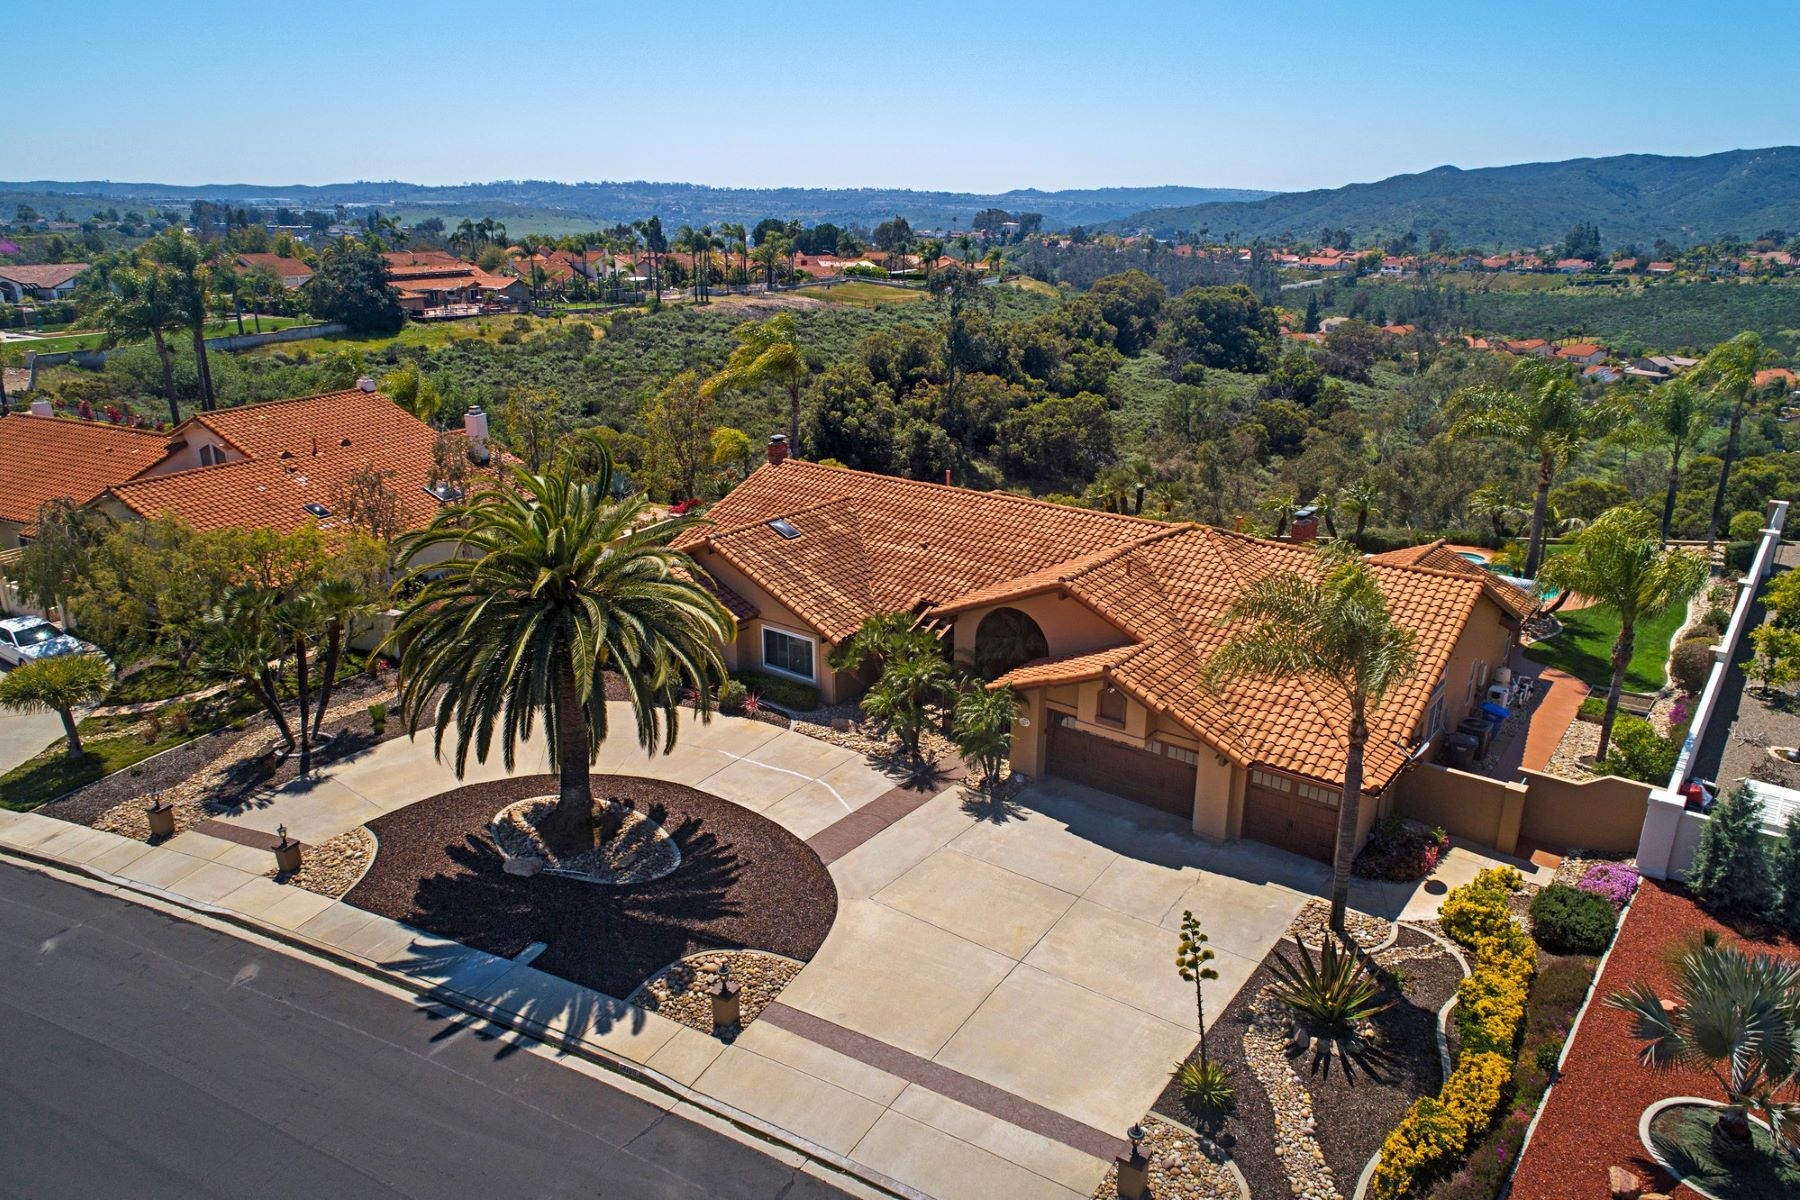 Single Family Homes for Sale at The Palisades! 14159 Palisades Drive Poway, California 92064 United States